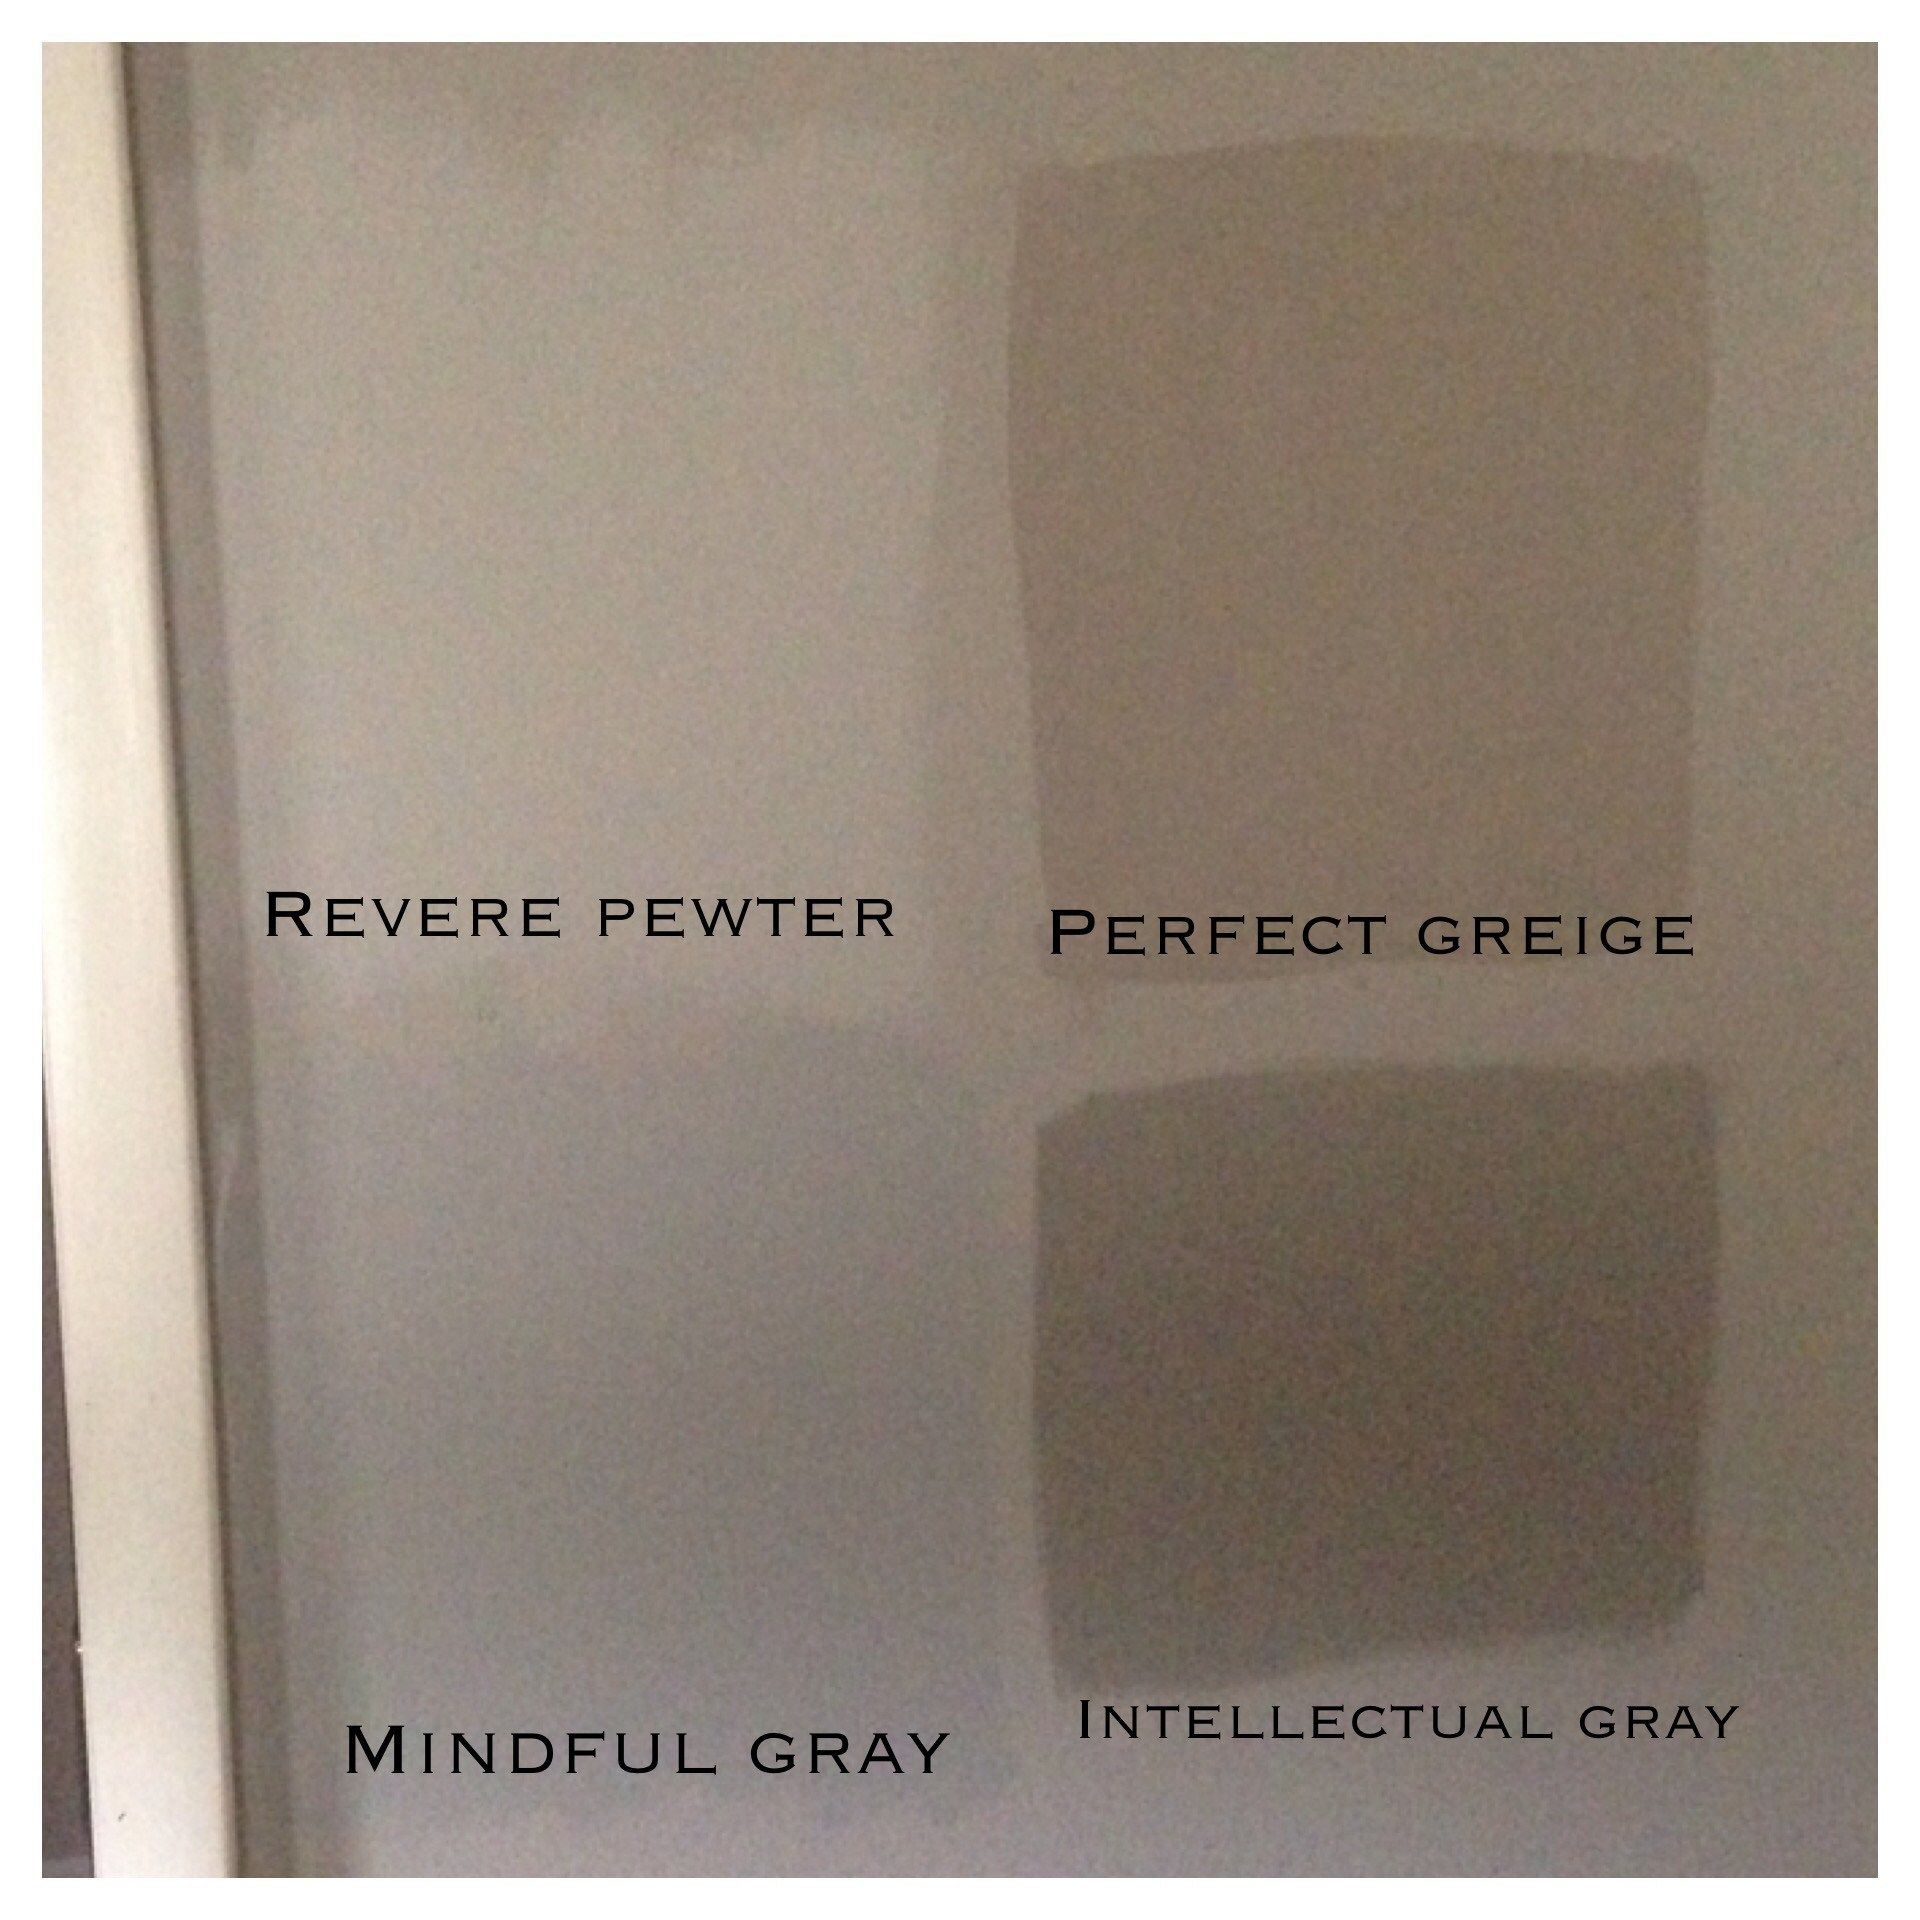 Scenic Revere Pewter Behr Greige Pale Oak Benjamin Moore Taupe Grey Paint Accessible Beige Und Paint Colors For Living Room Room Paint Colors Living Room Paint